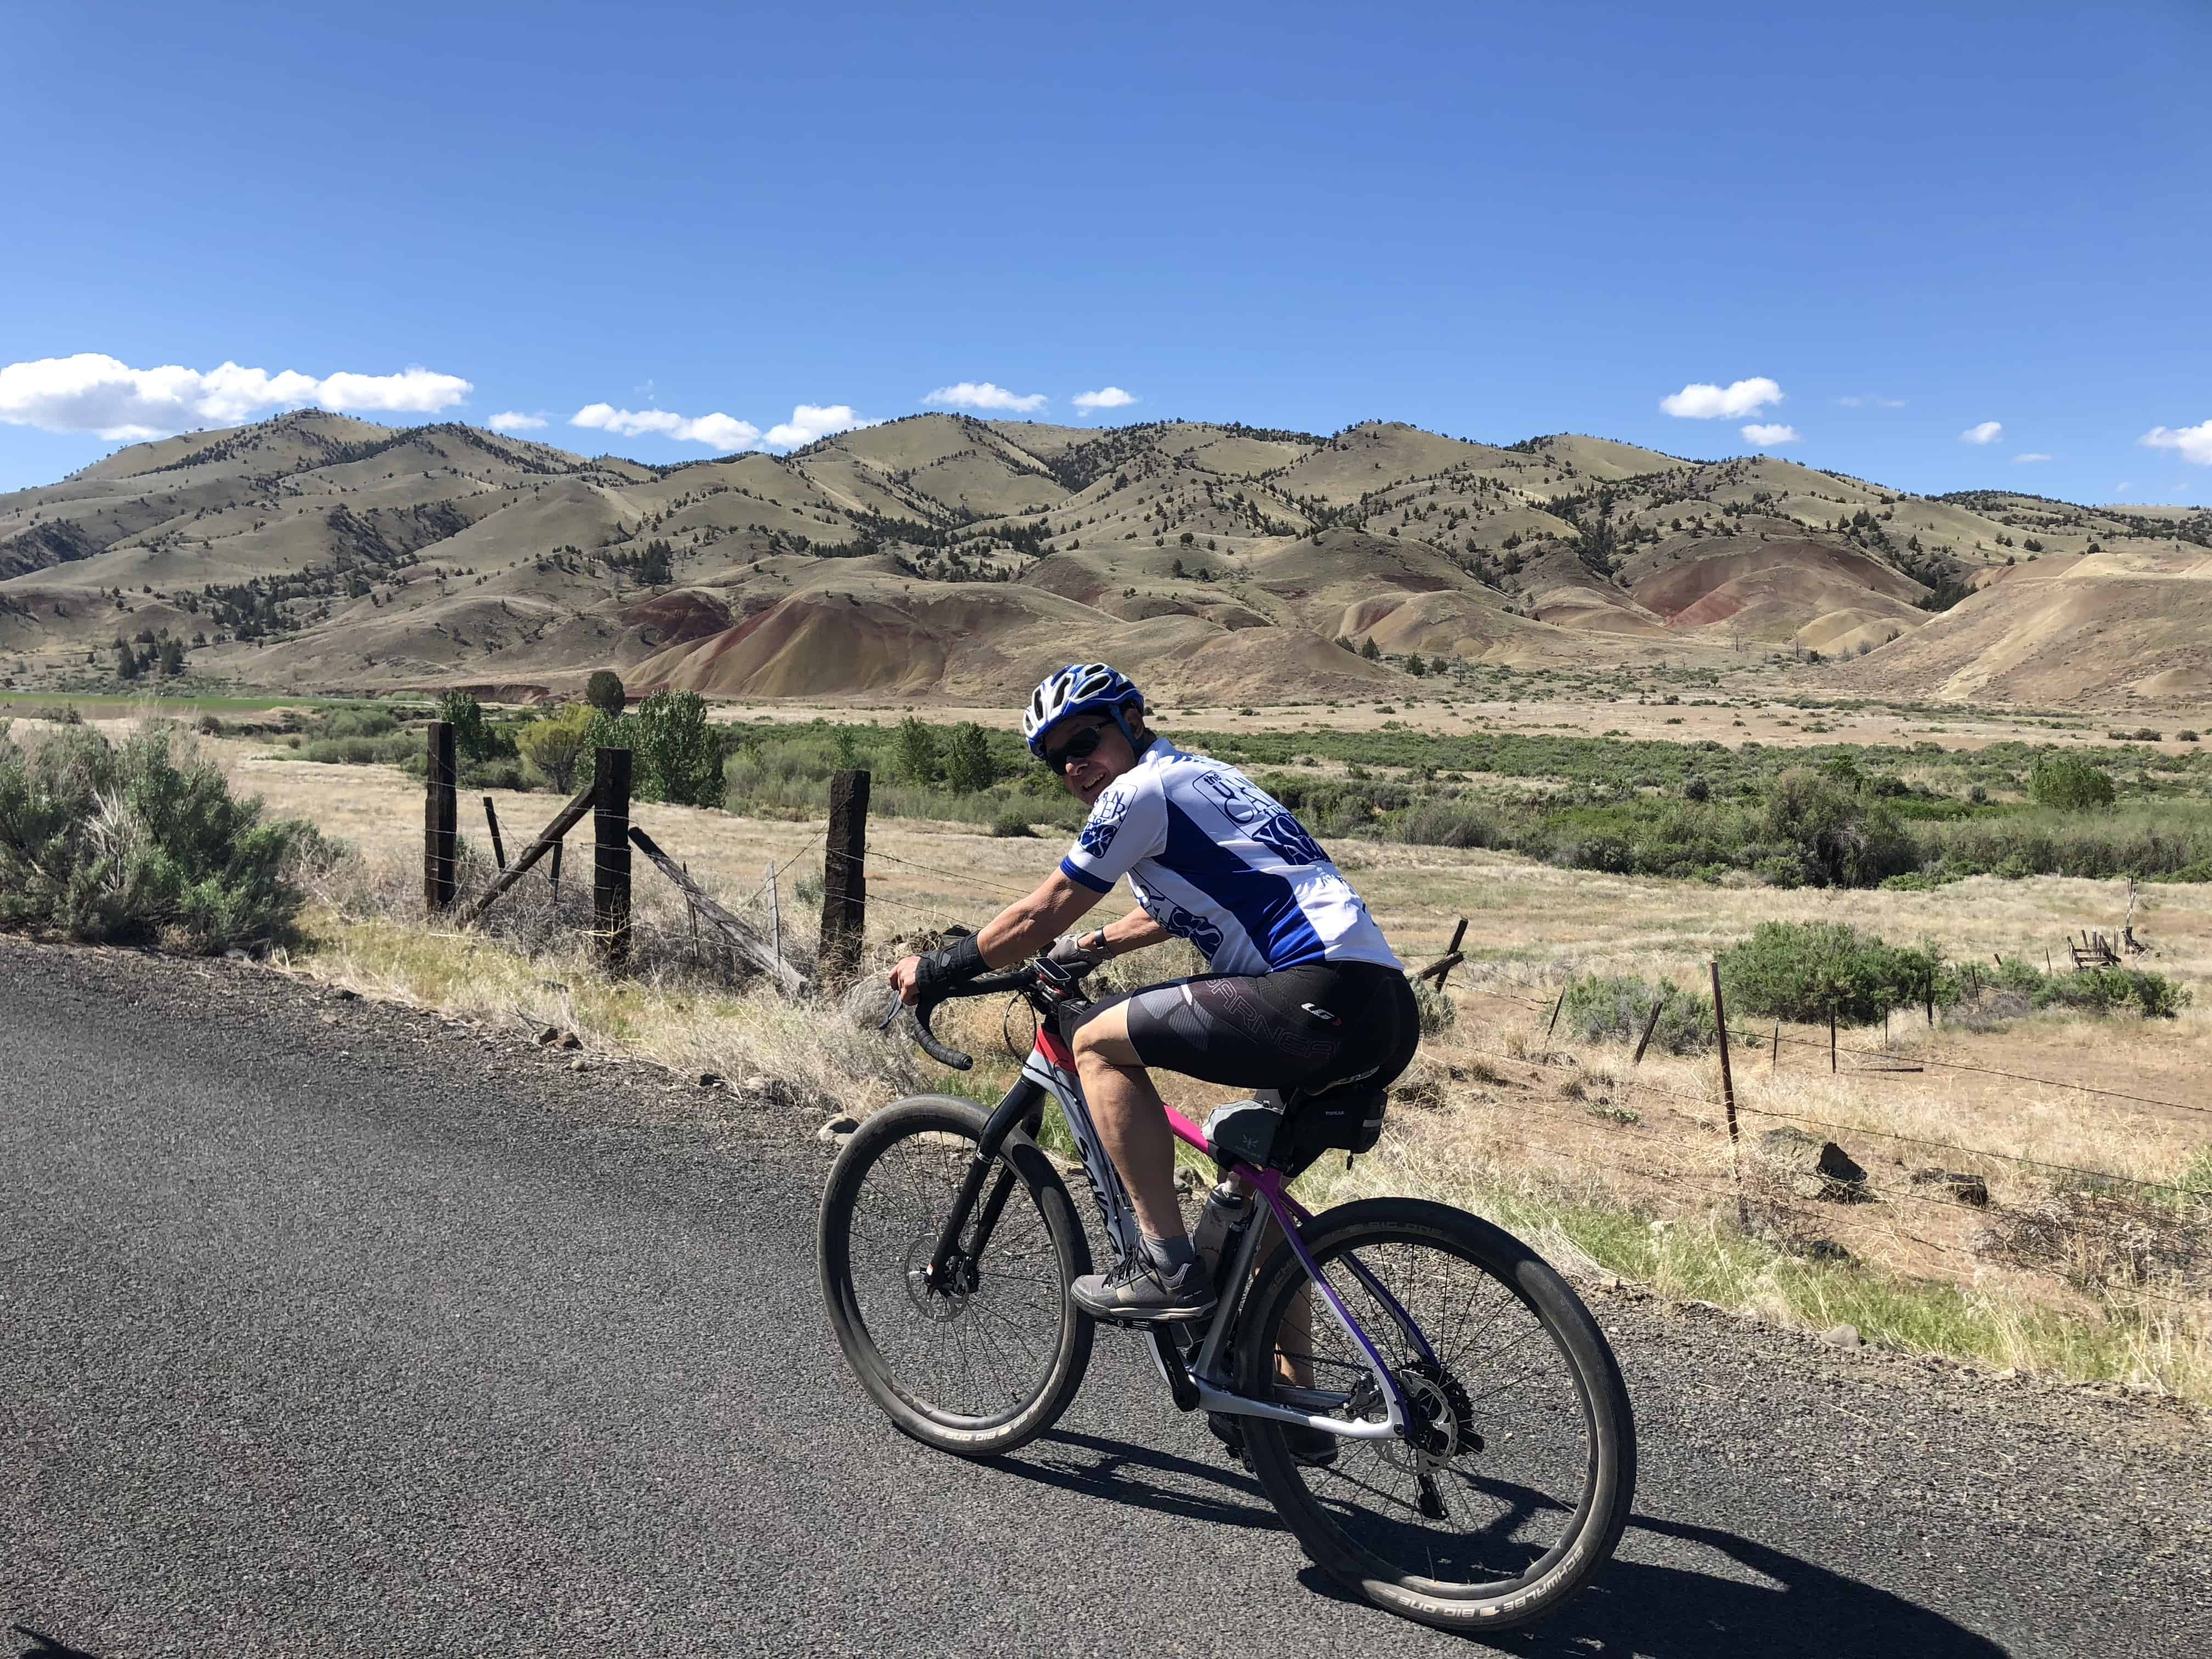 Cyclist on paved road near Painted HIlls, Oregon.